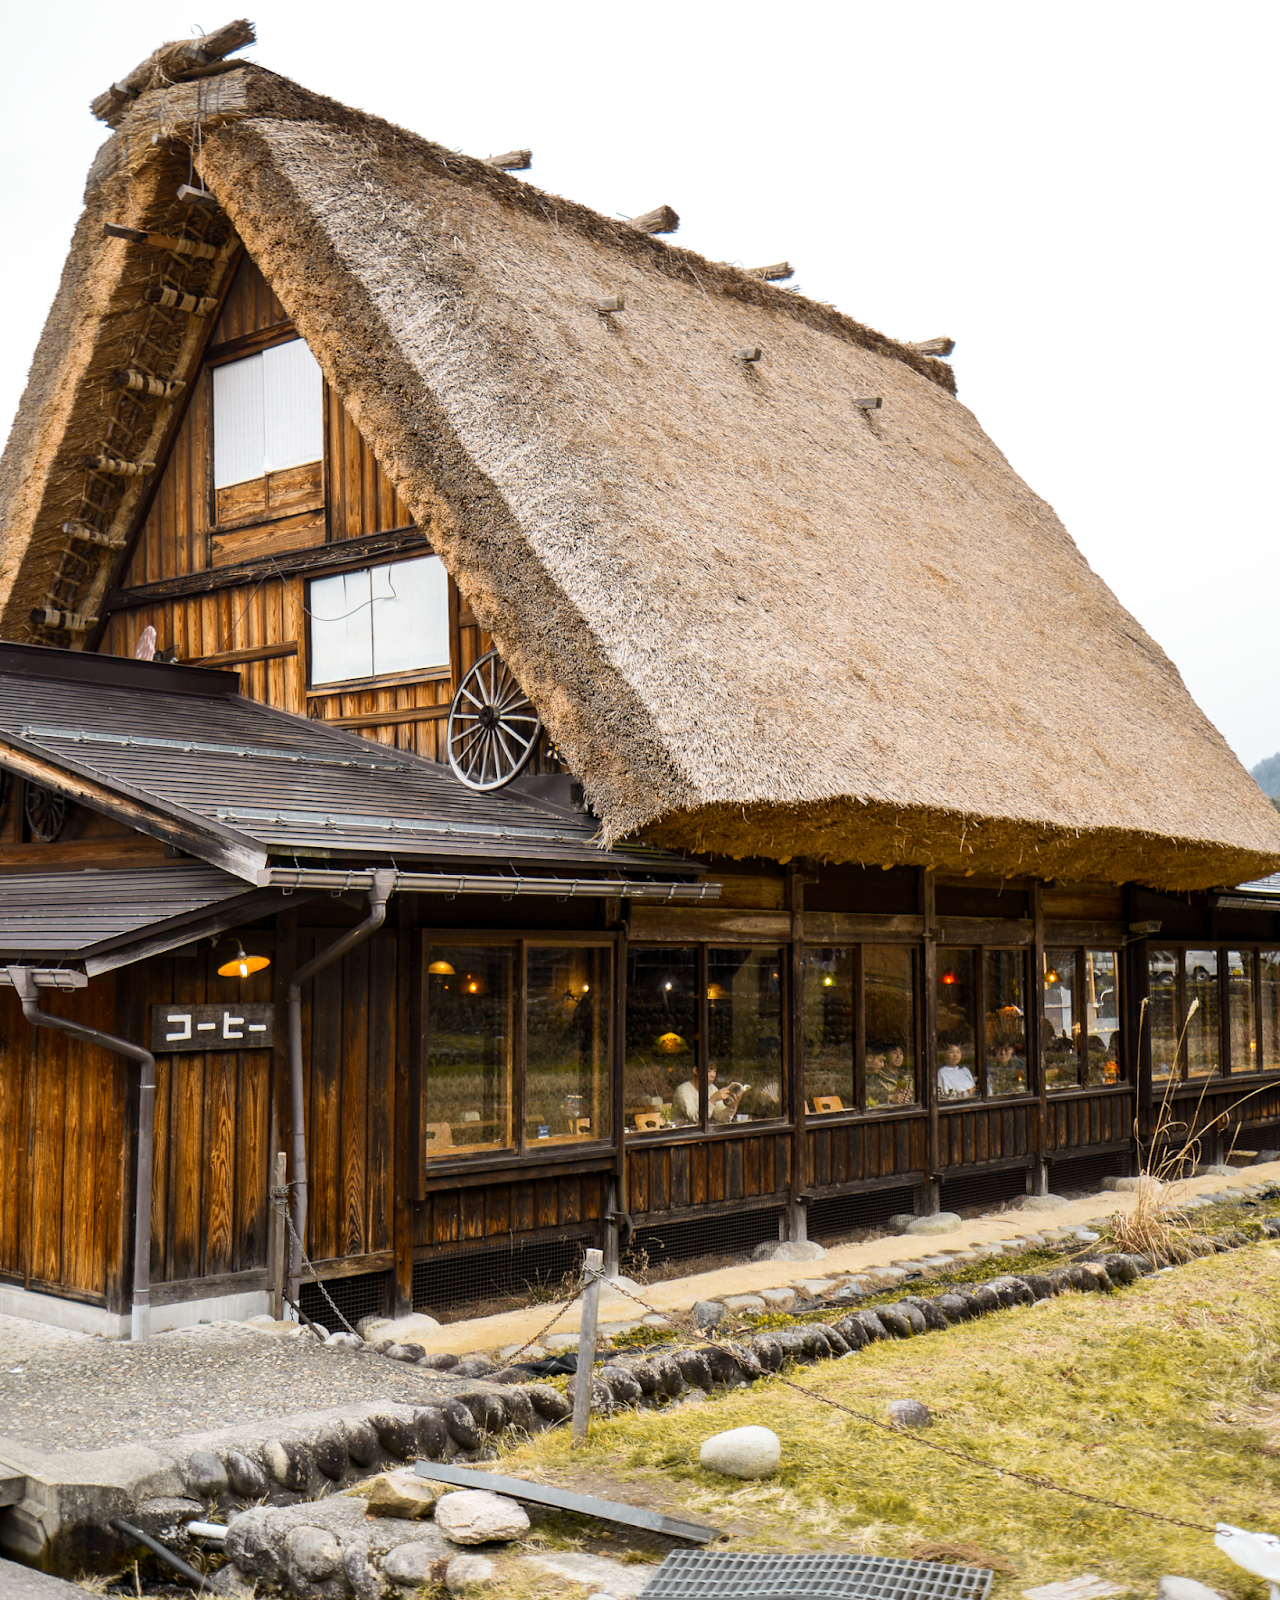 Shirakawago, UNESCO site in Japan, Kanazawa trip from Tokyo, must-visit cities in Japan, photogenic and charming towns in Japan - FOREVERVANNY